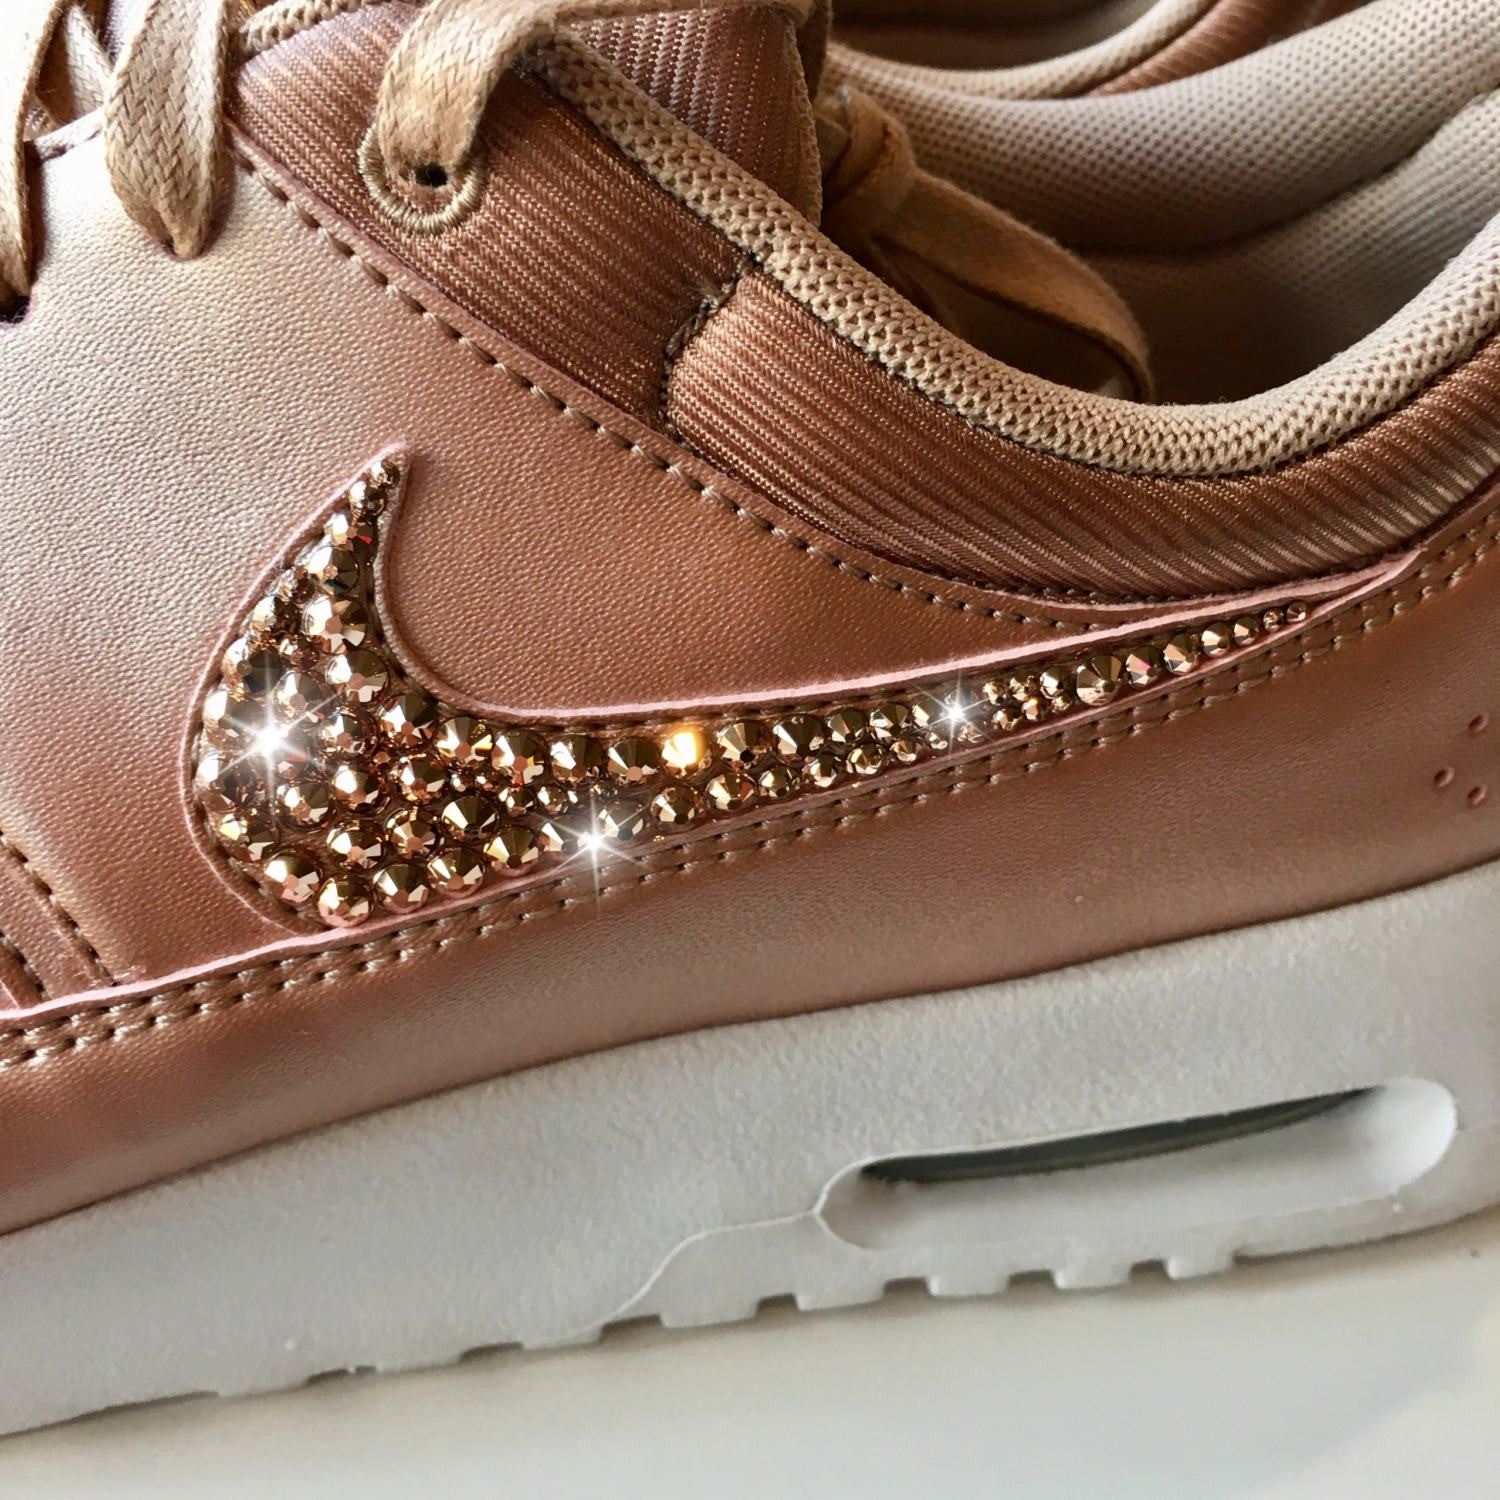 ... ROSE GOLD Bling Nike Air Max Thea Metallic SE Shoes with Swarovski  Crystals   Bedazzled with ... 68ab25b61ef6